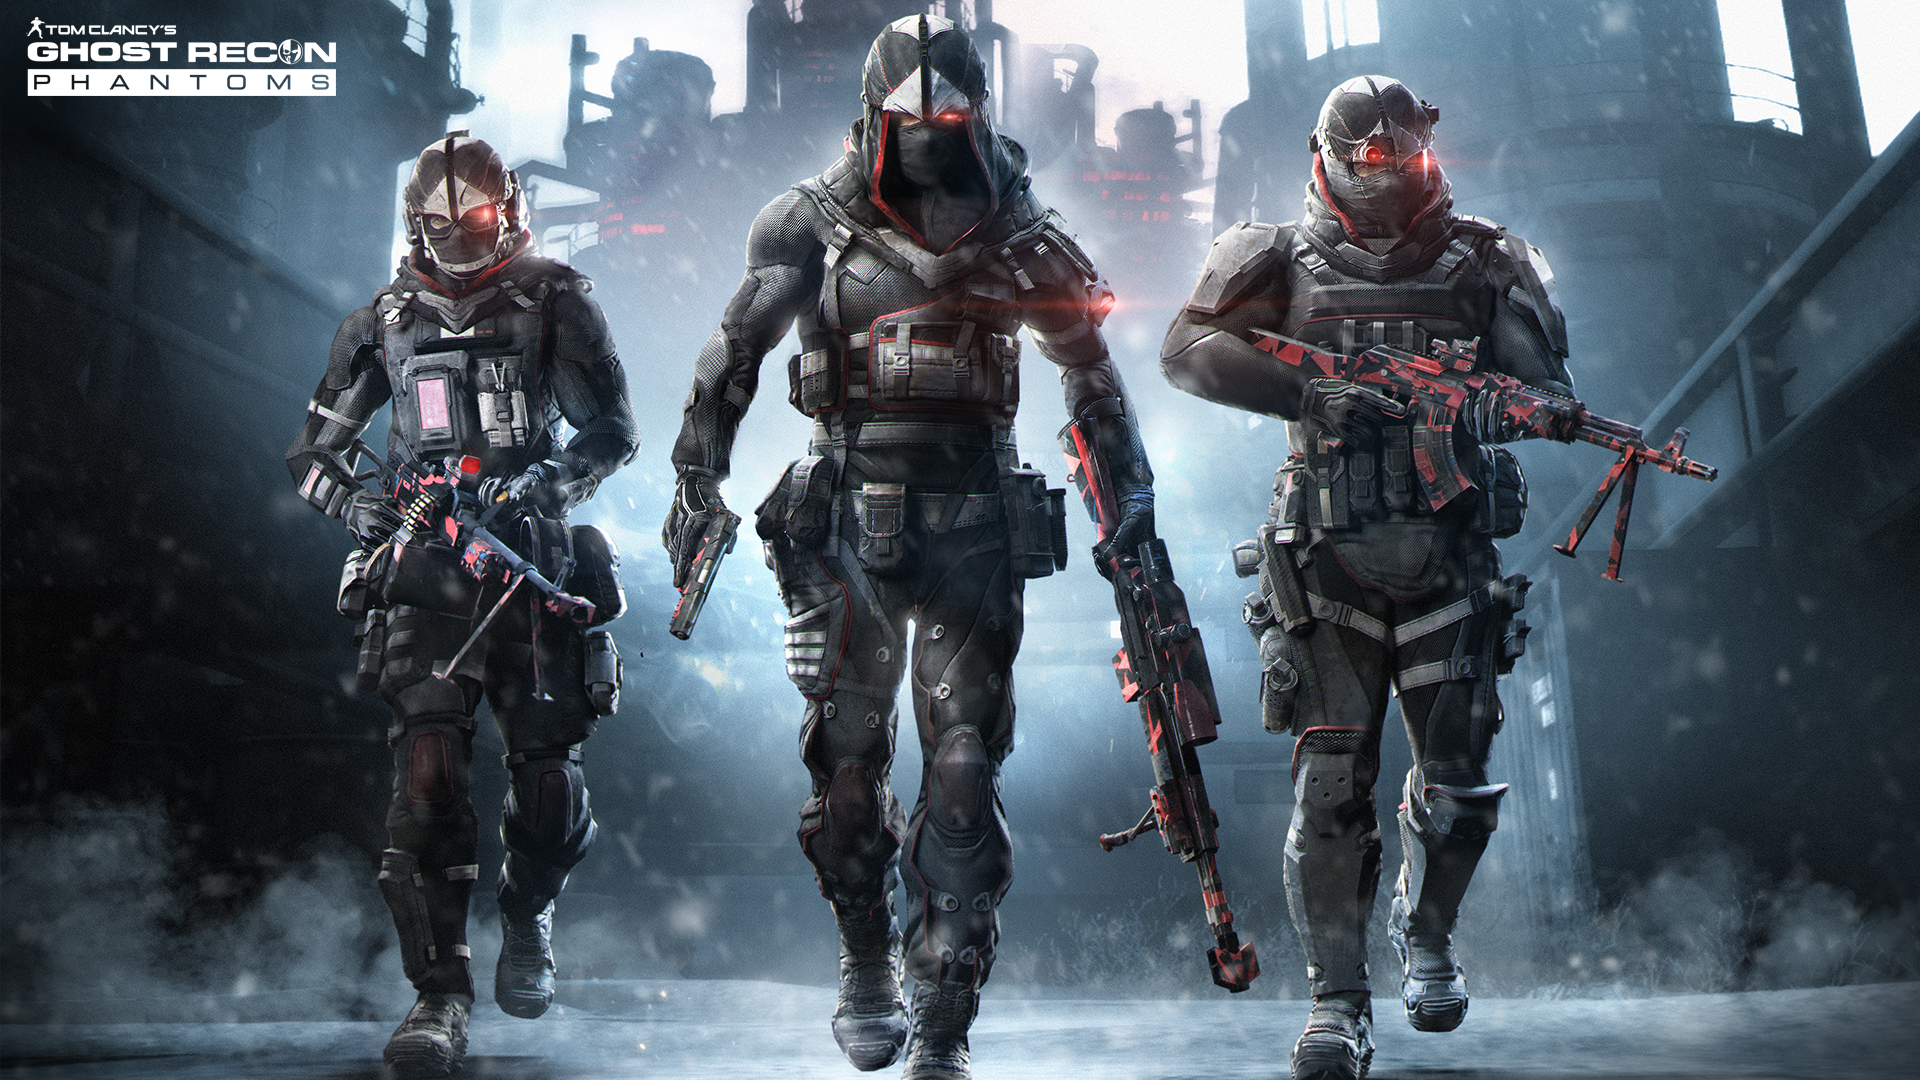 Ghost recon phantoms launches new trailer read more the infinite pack